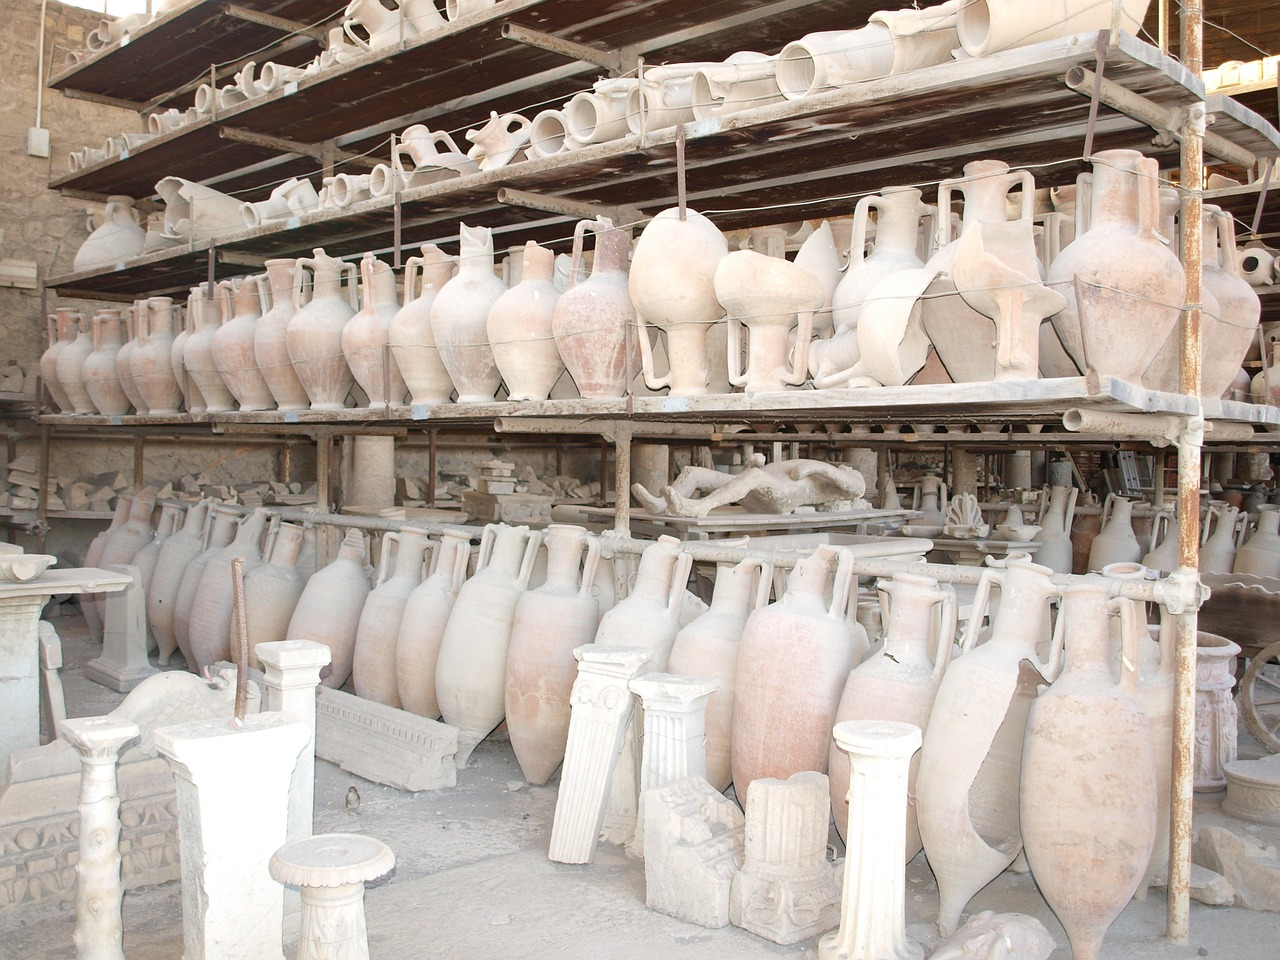 pompeii vessels italy ruins free photo